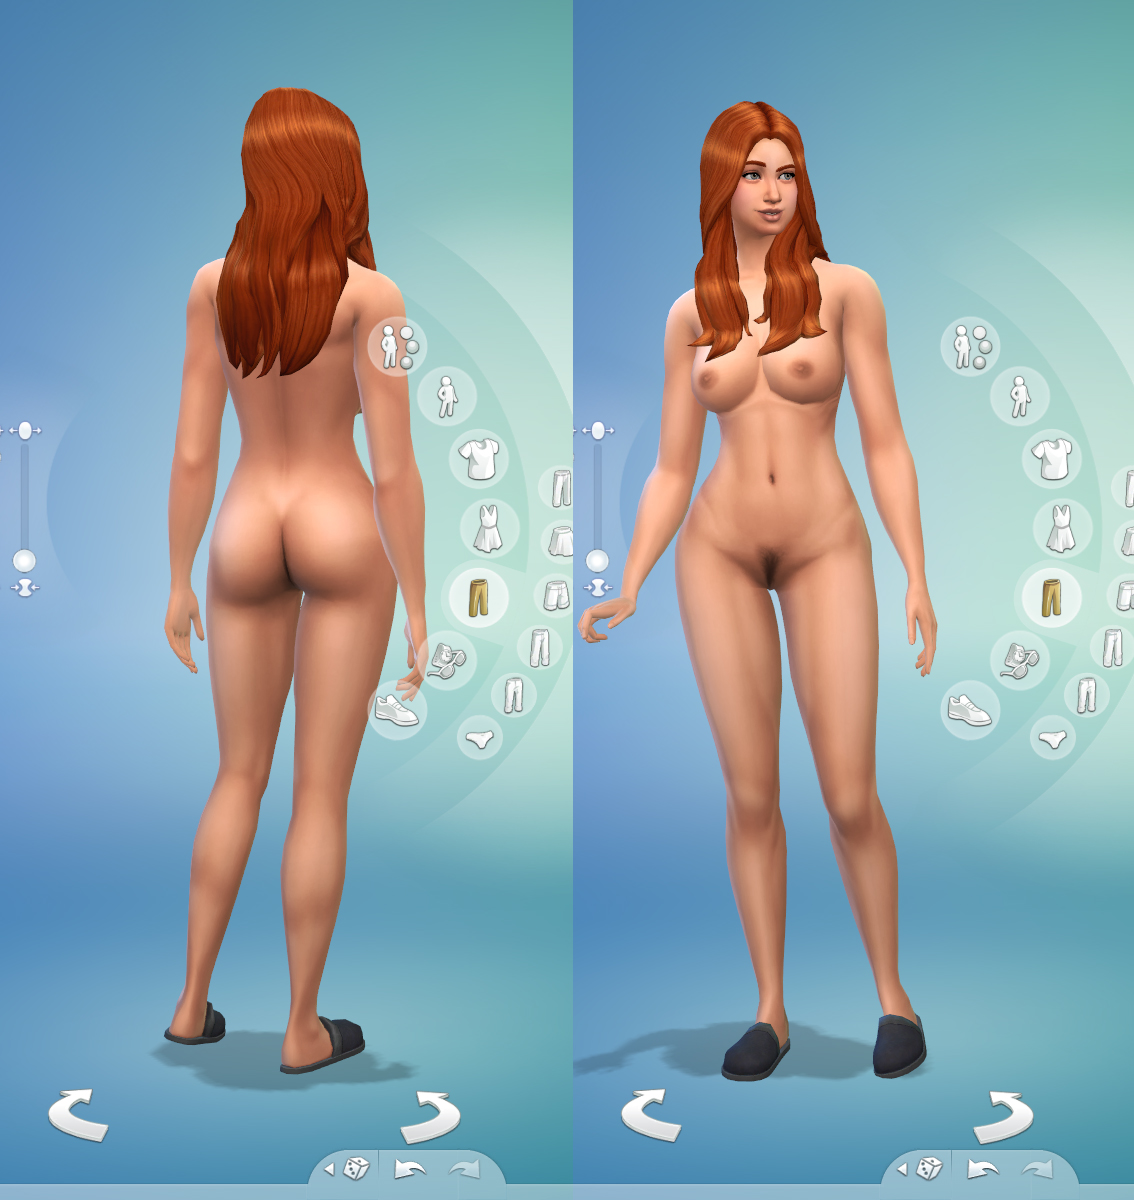 Sims sex patches fucking comic